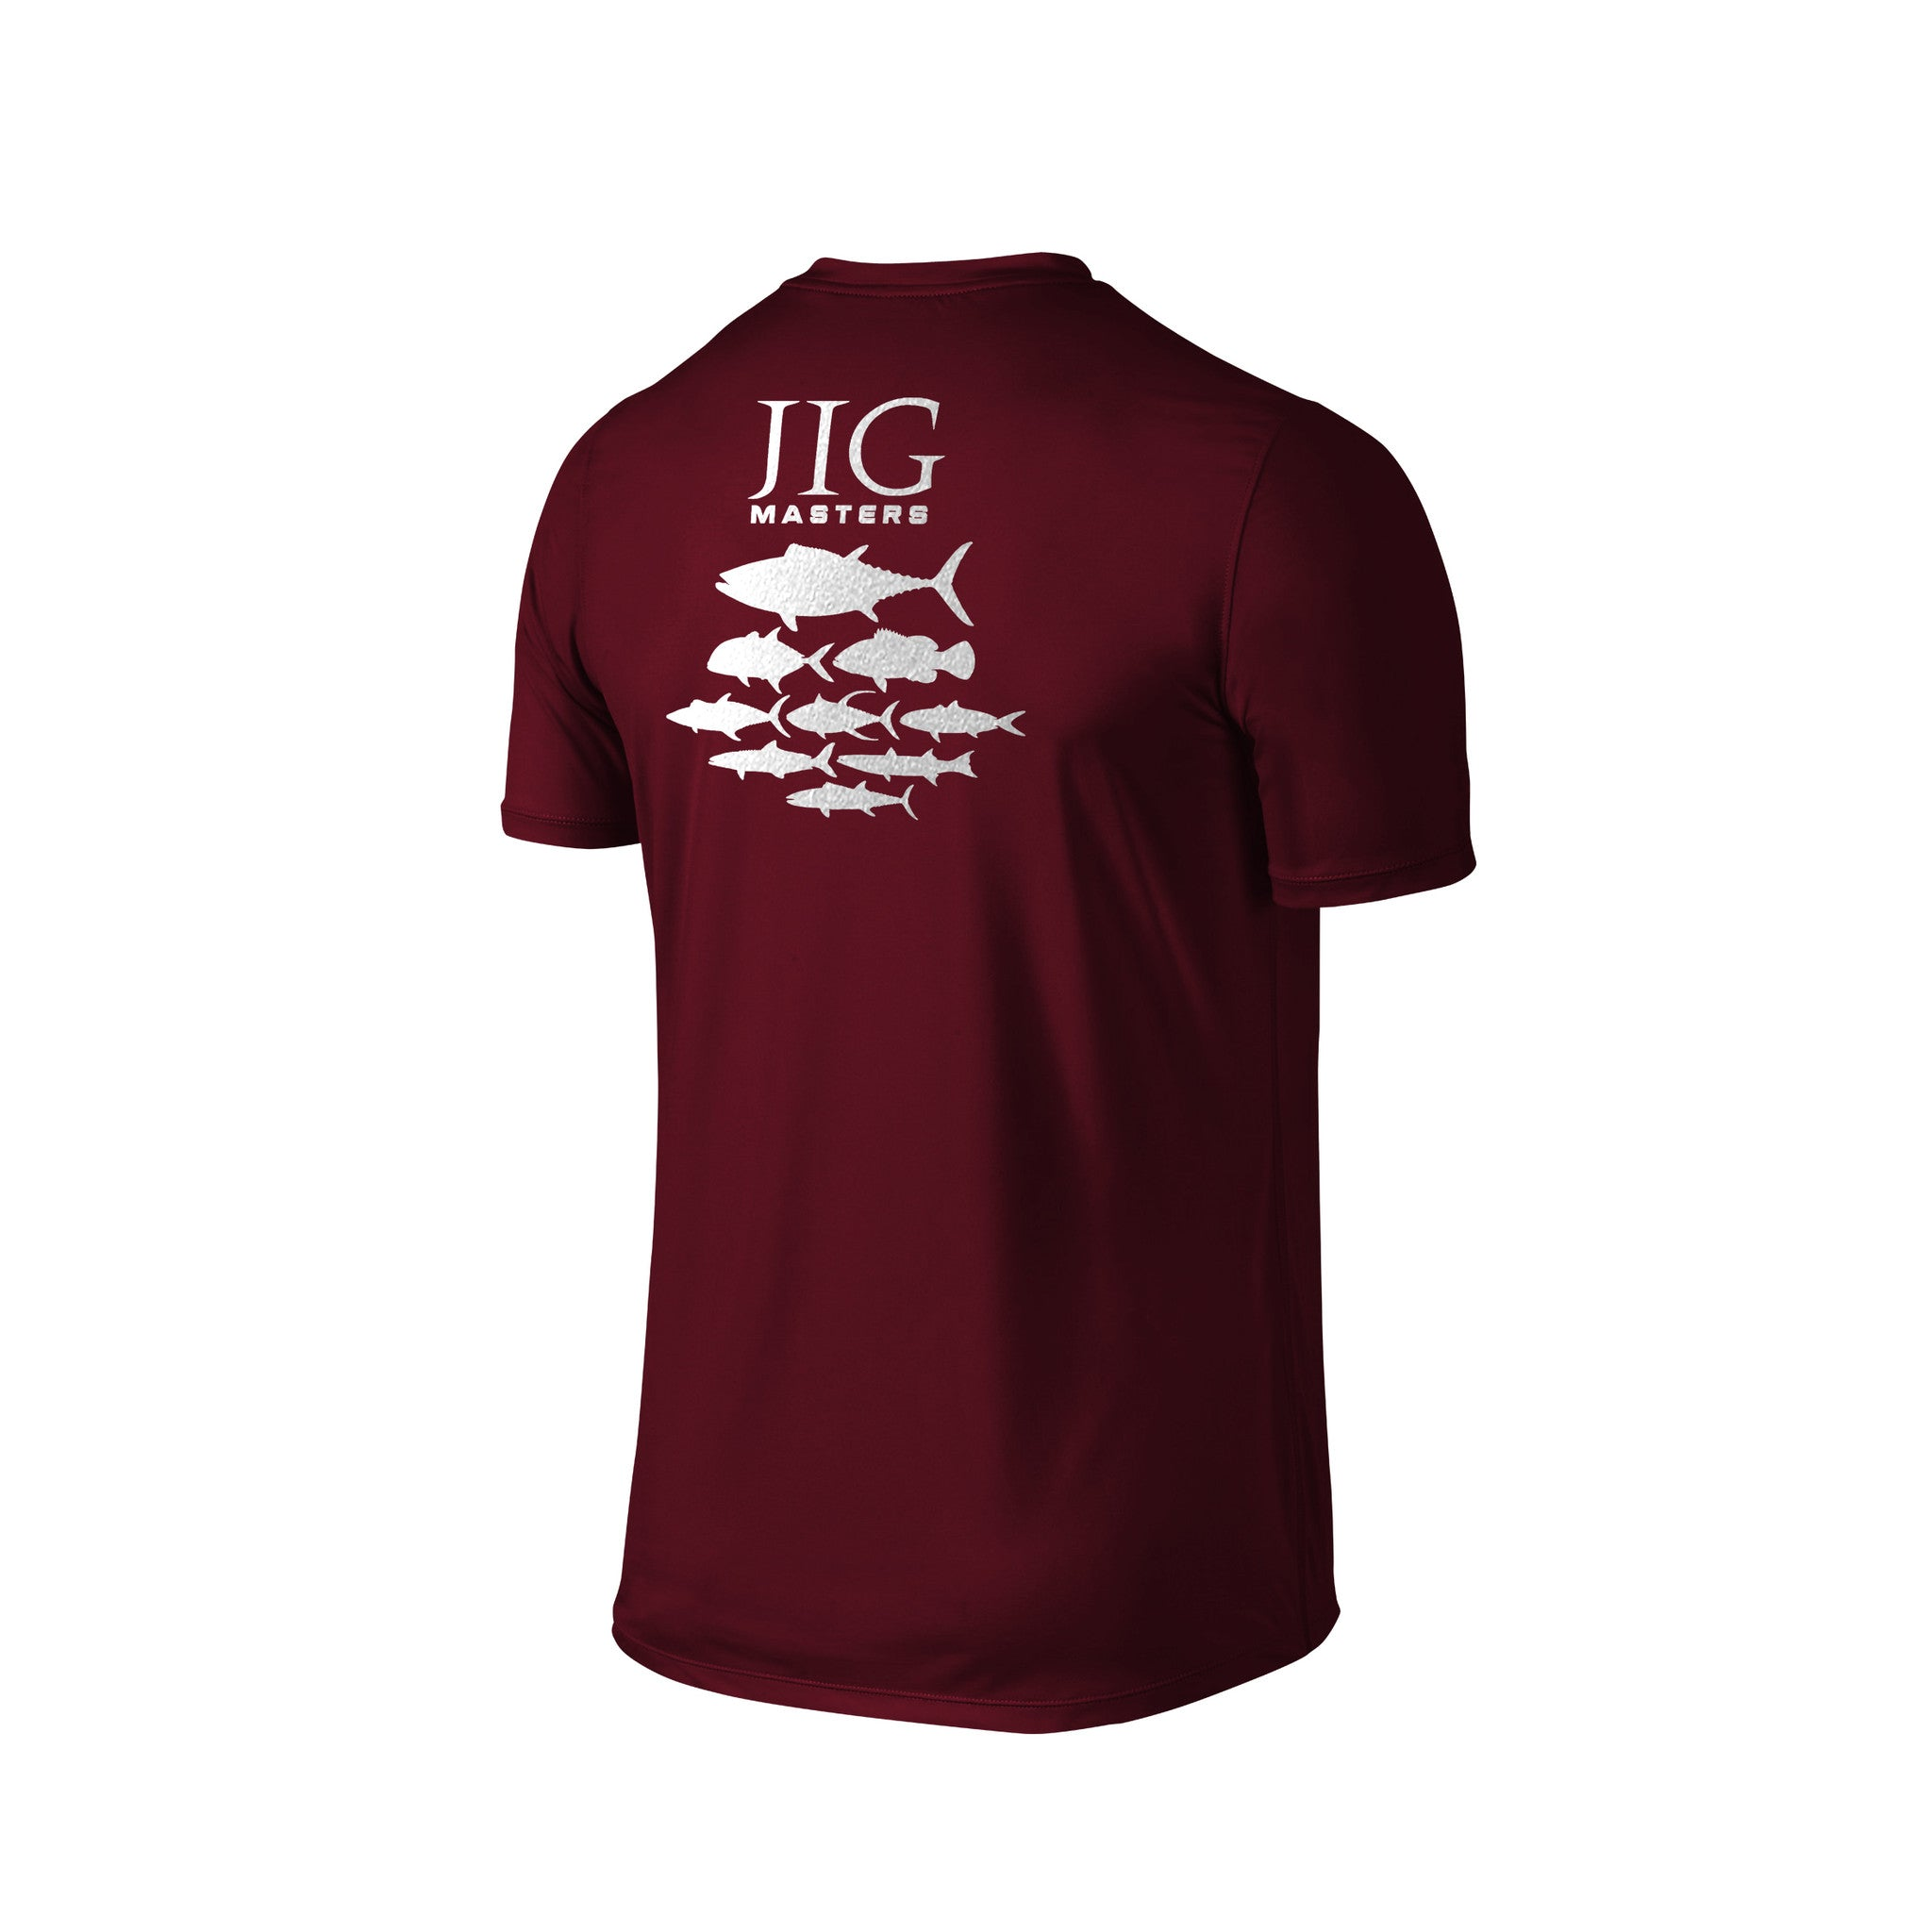 SportyFish Silhouette Series Silver Print Maroon T-shirt(back view): Jig Masters